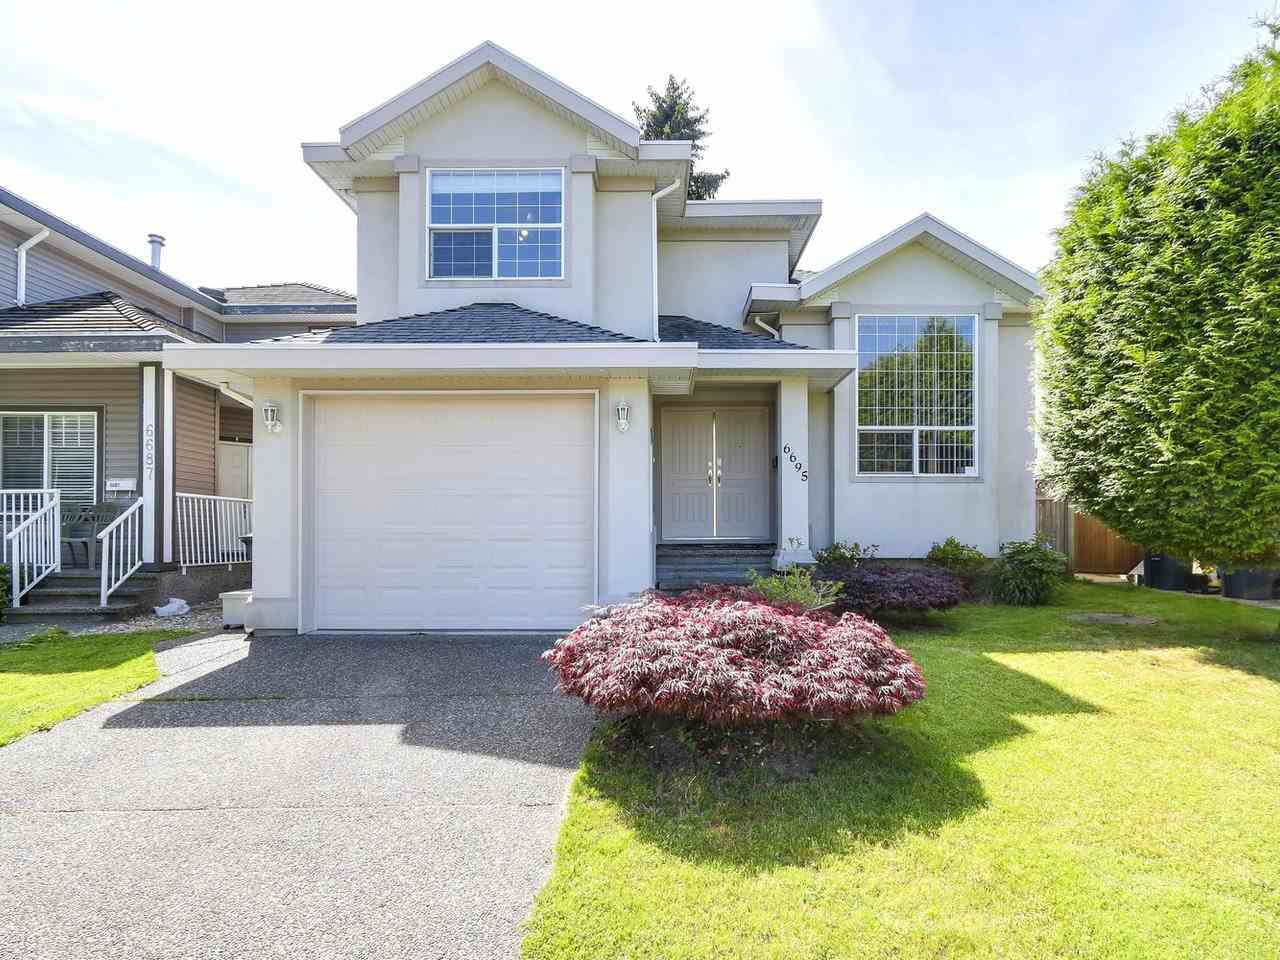 Main Photo: 6695 134 Street in Surrey: West Newton House for sale : MLS®# R2174930